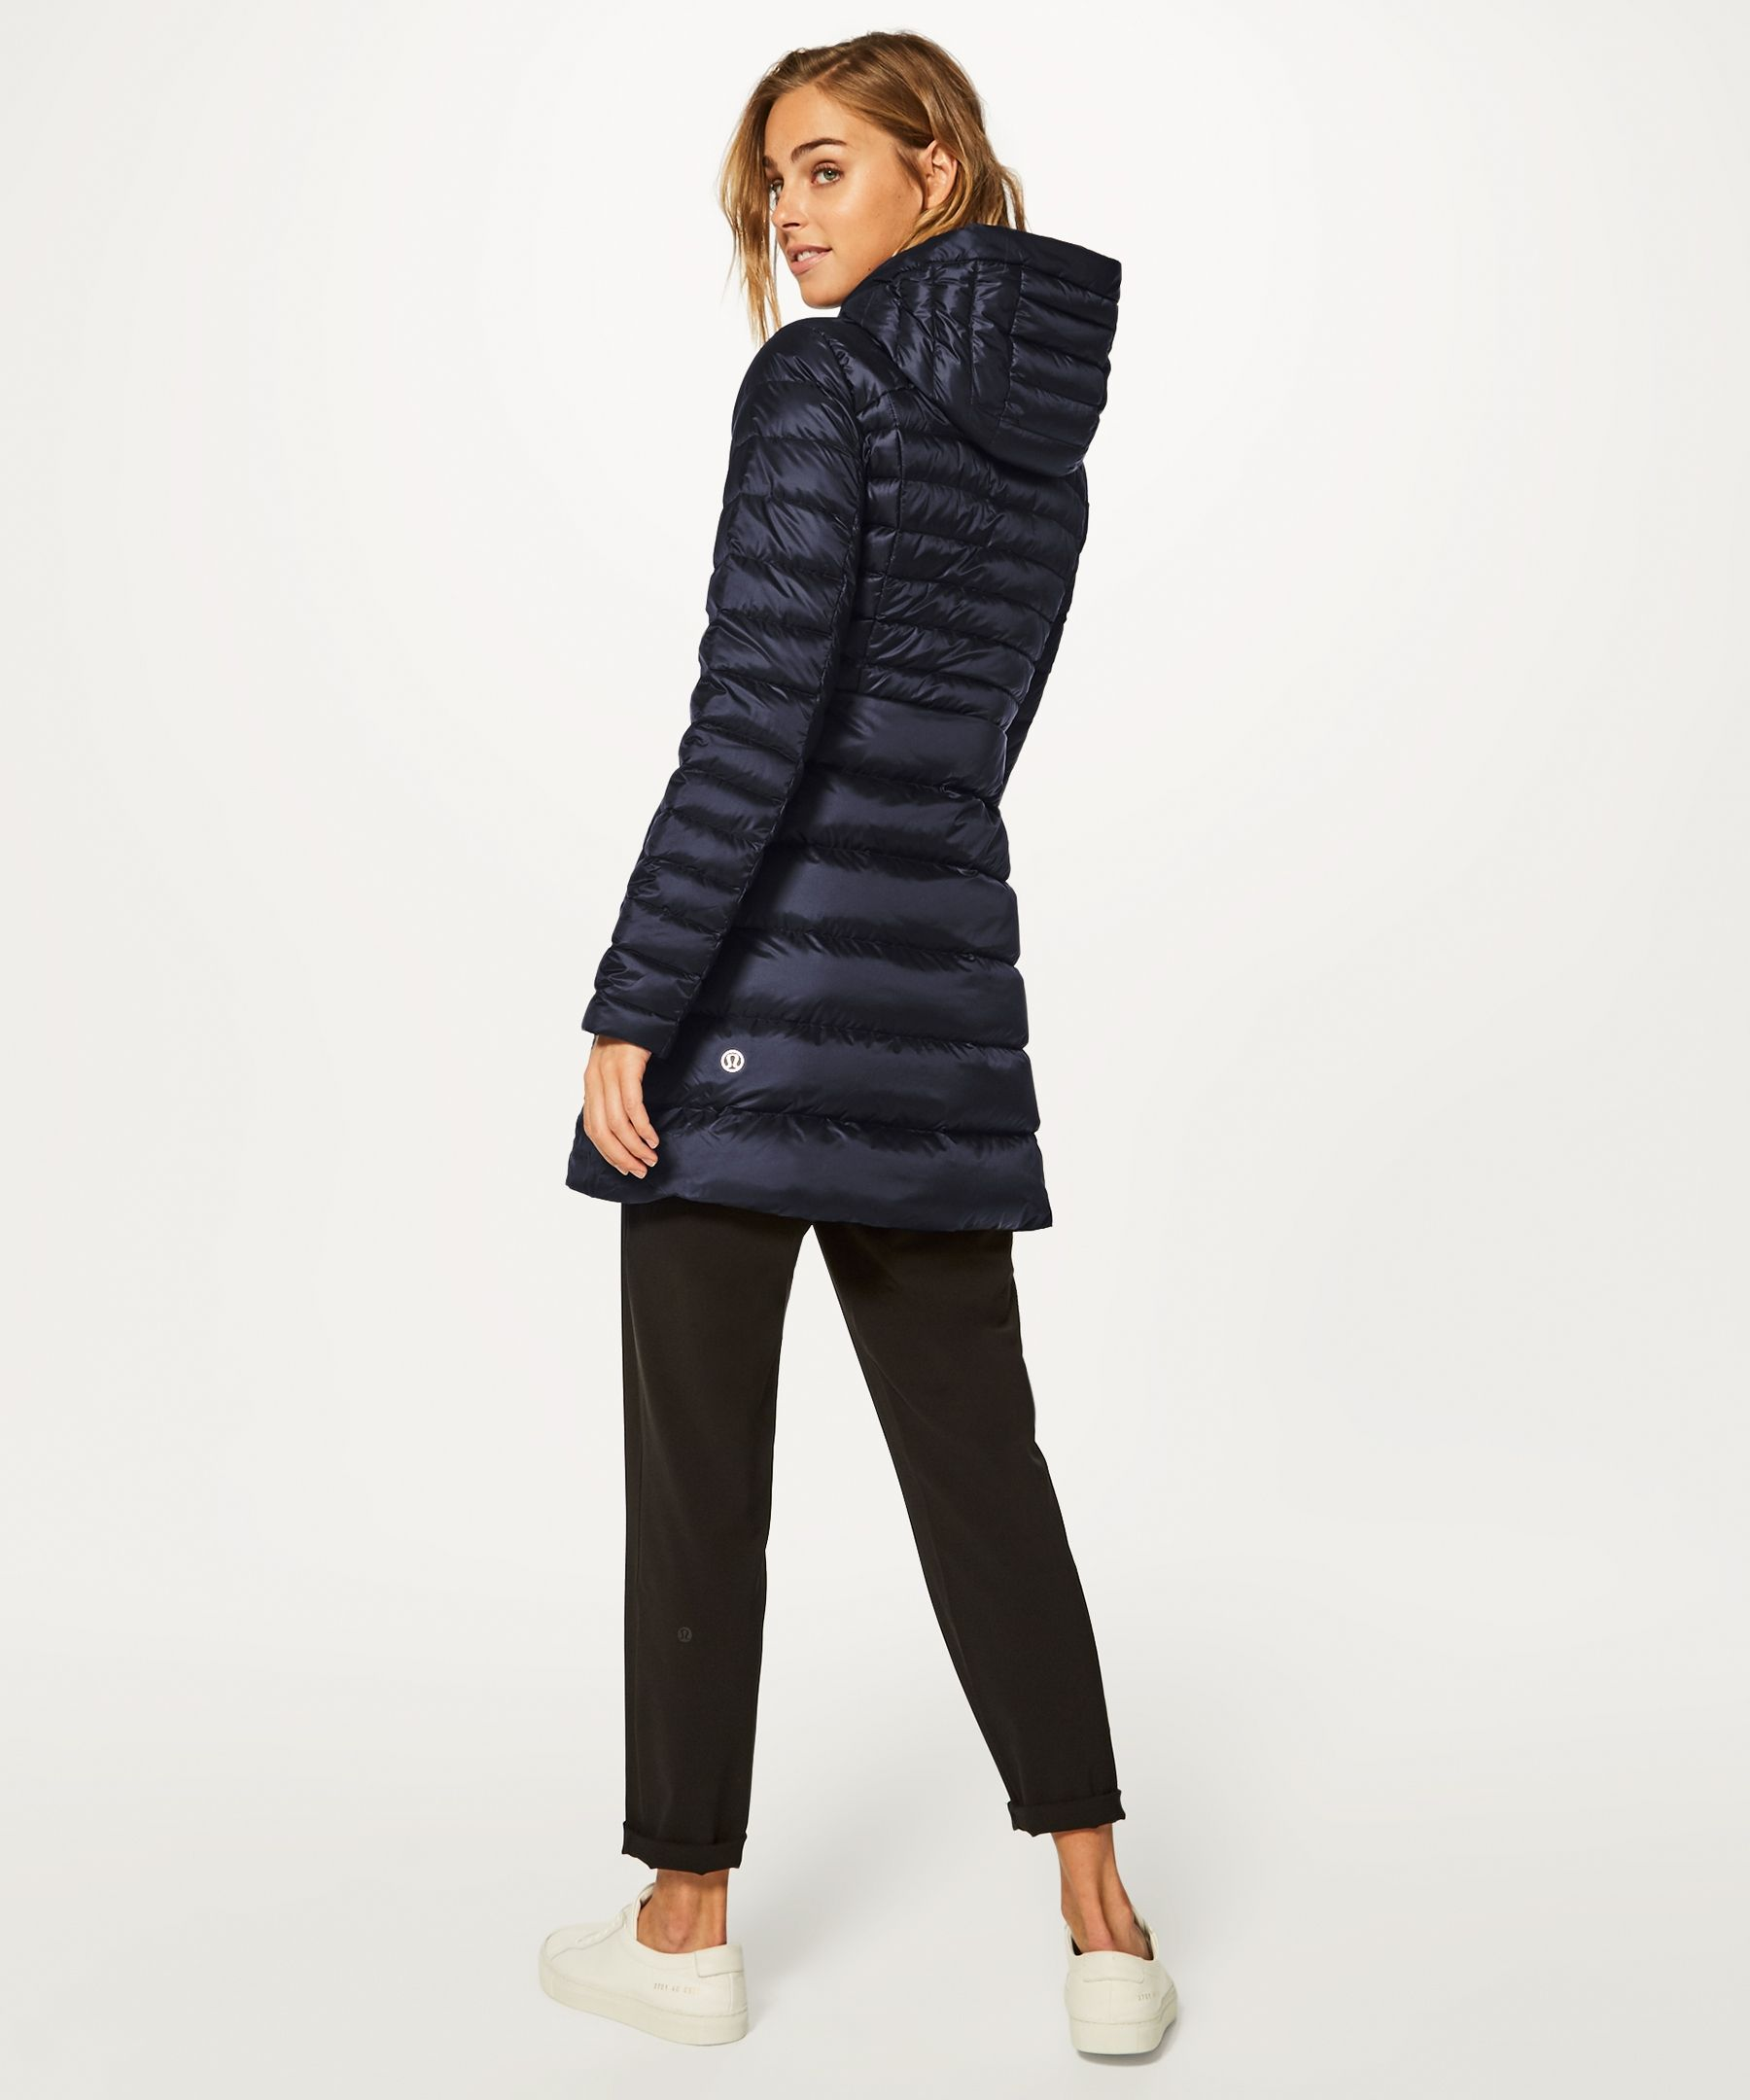 The 25 Best Winter Coats For College Students Society19 Winter Coats Women Best Winter Coats Long Winter Jacket [ 2160 x 1800 Pixel ]